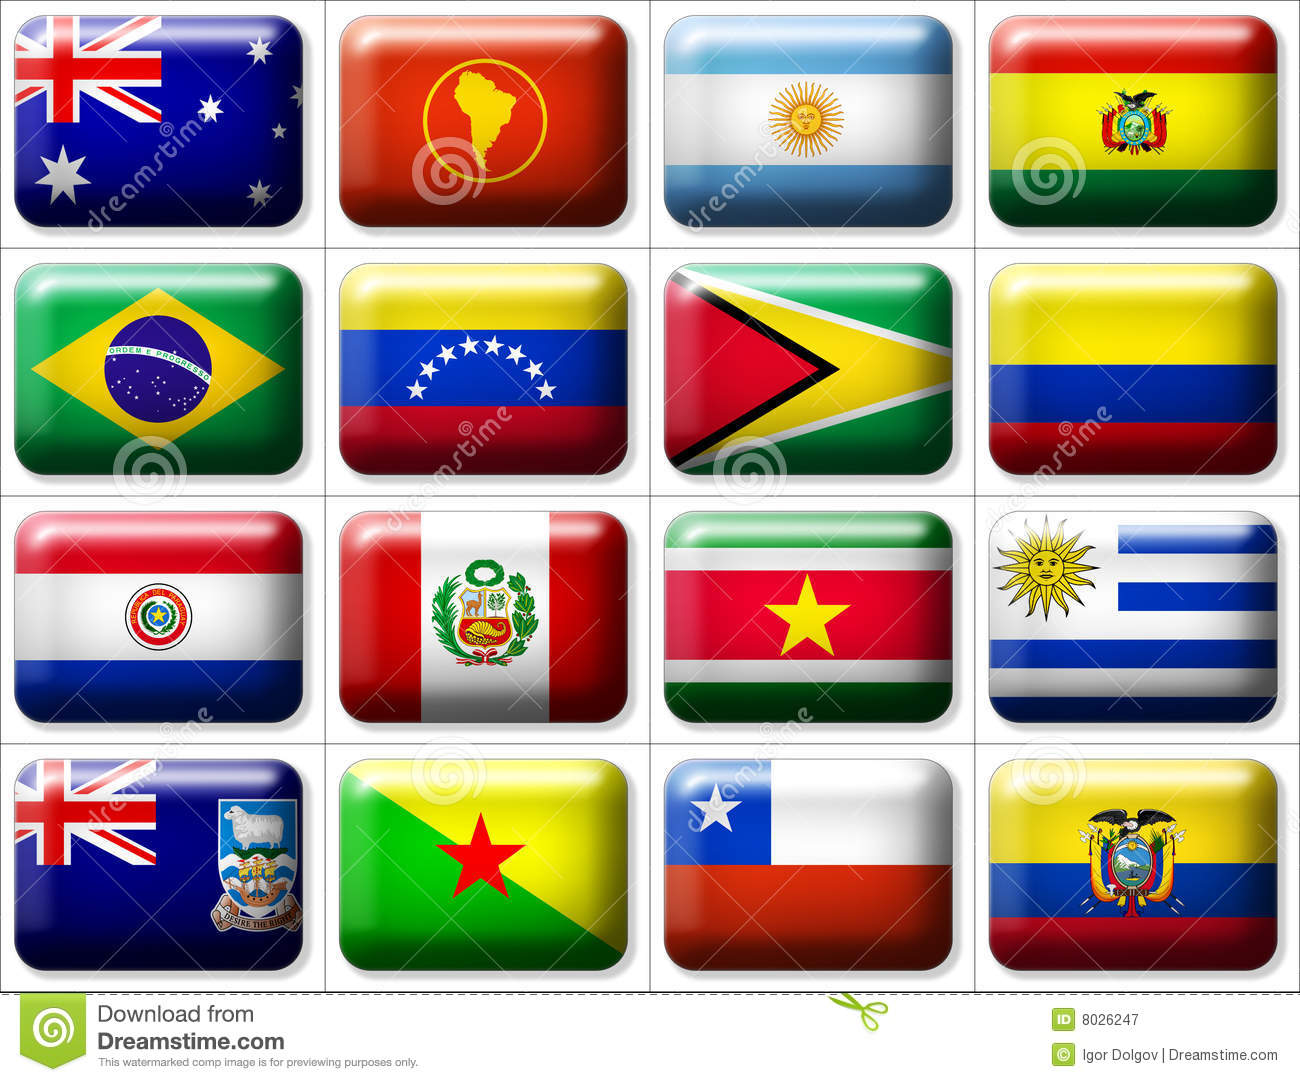 south american dating australia With over 30 years experience operating escorted group tours to europe, asia,  africa, central and south america & antarctica book your next adventure travel.